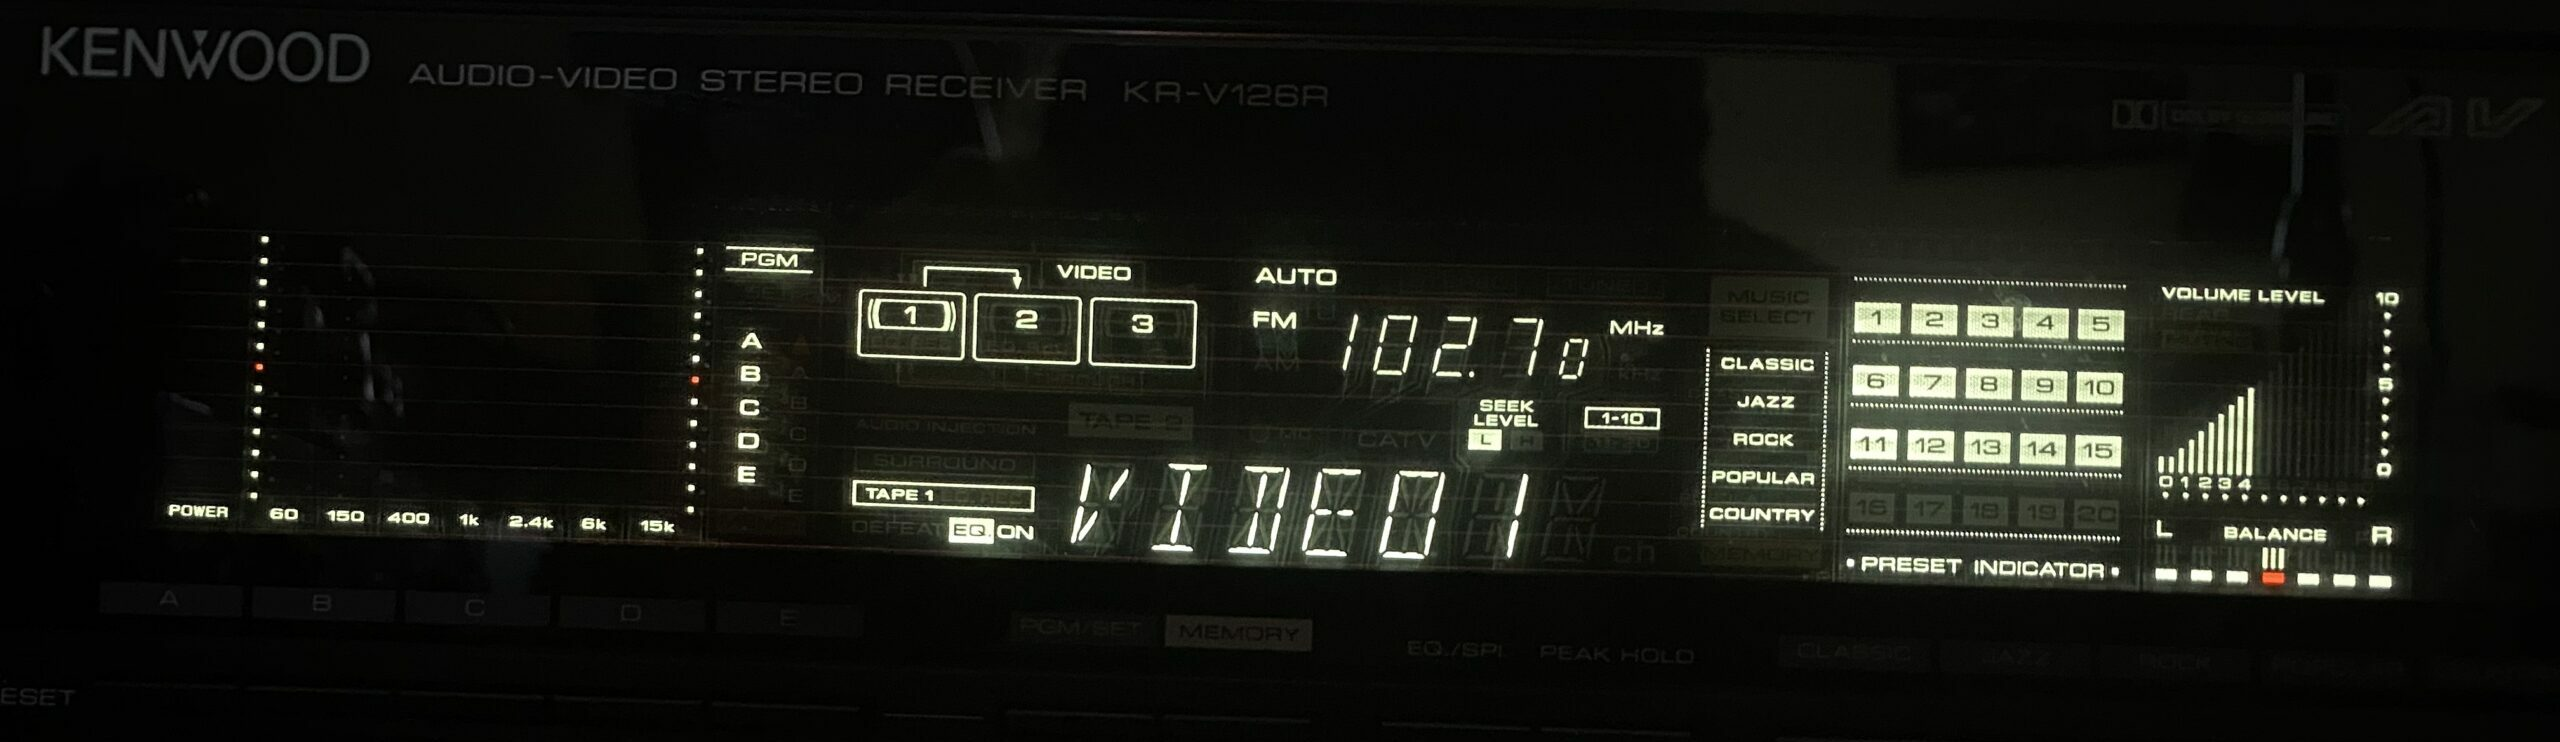 The display of the Kenwood V126R.